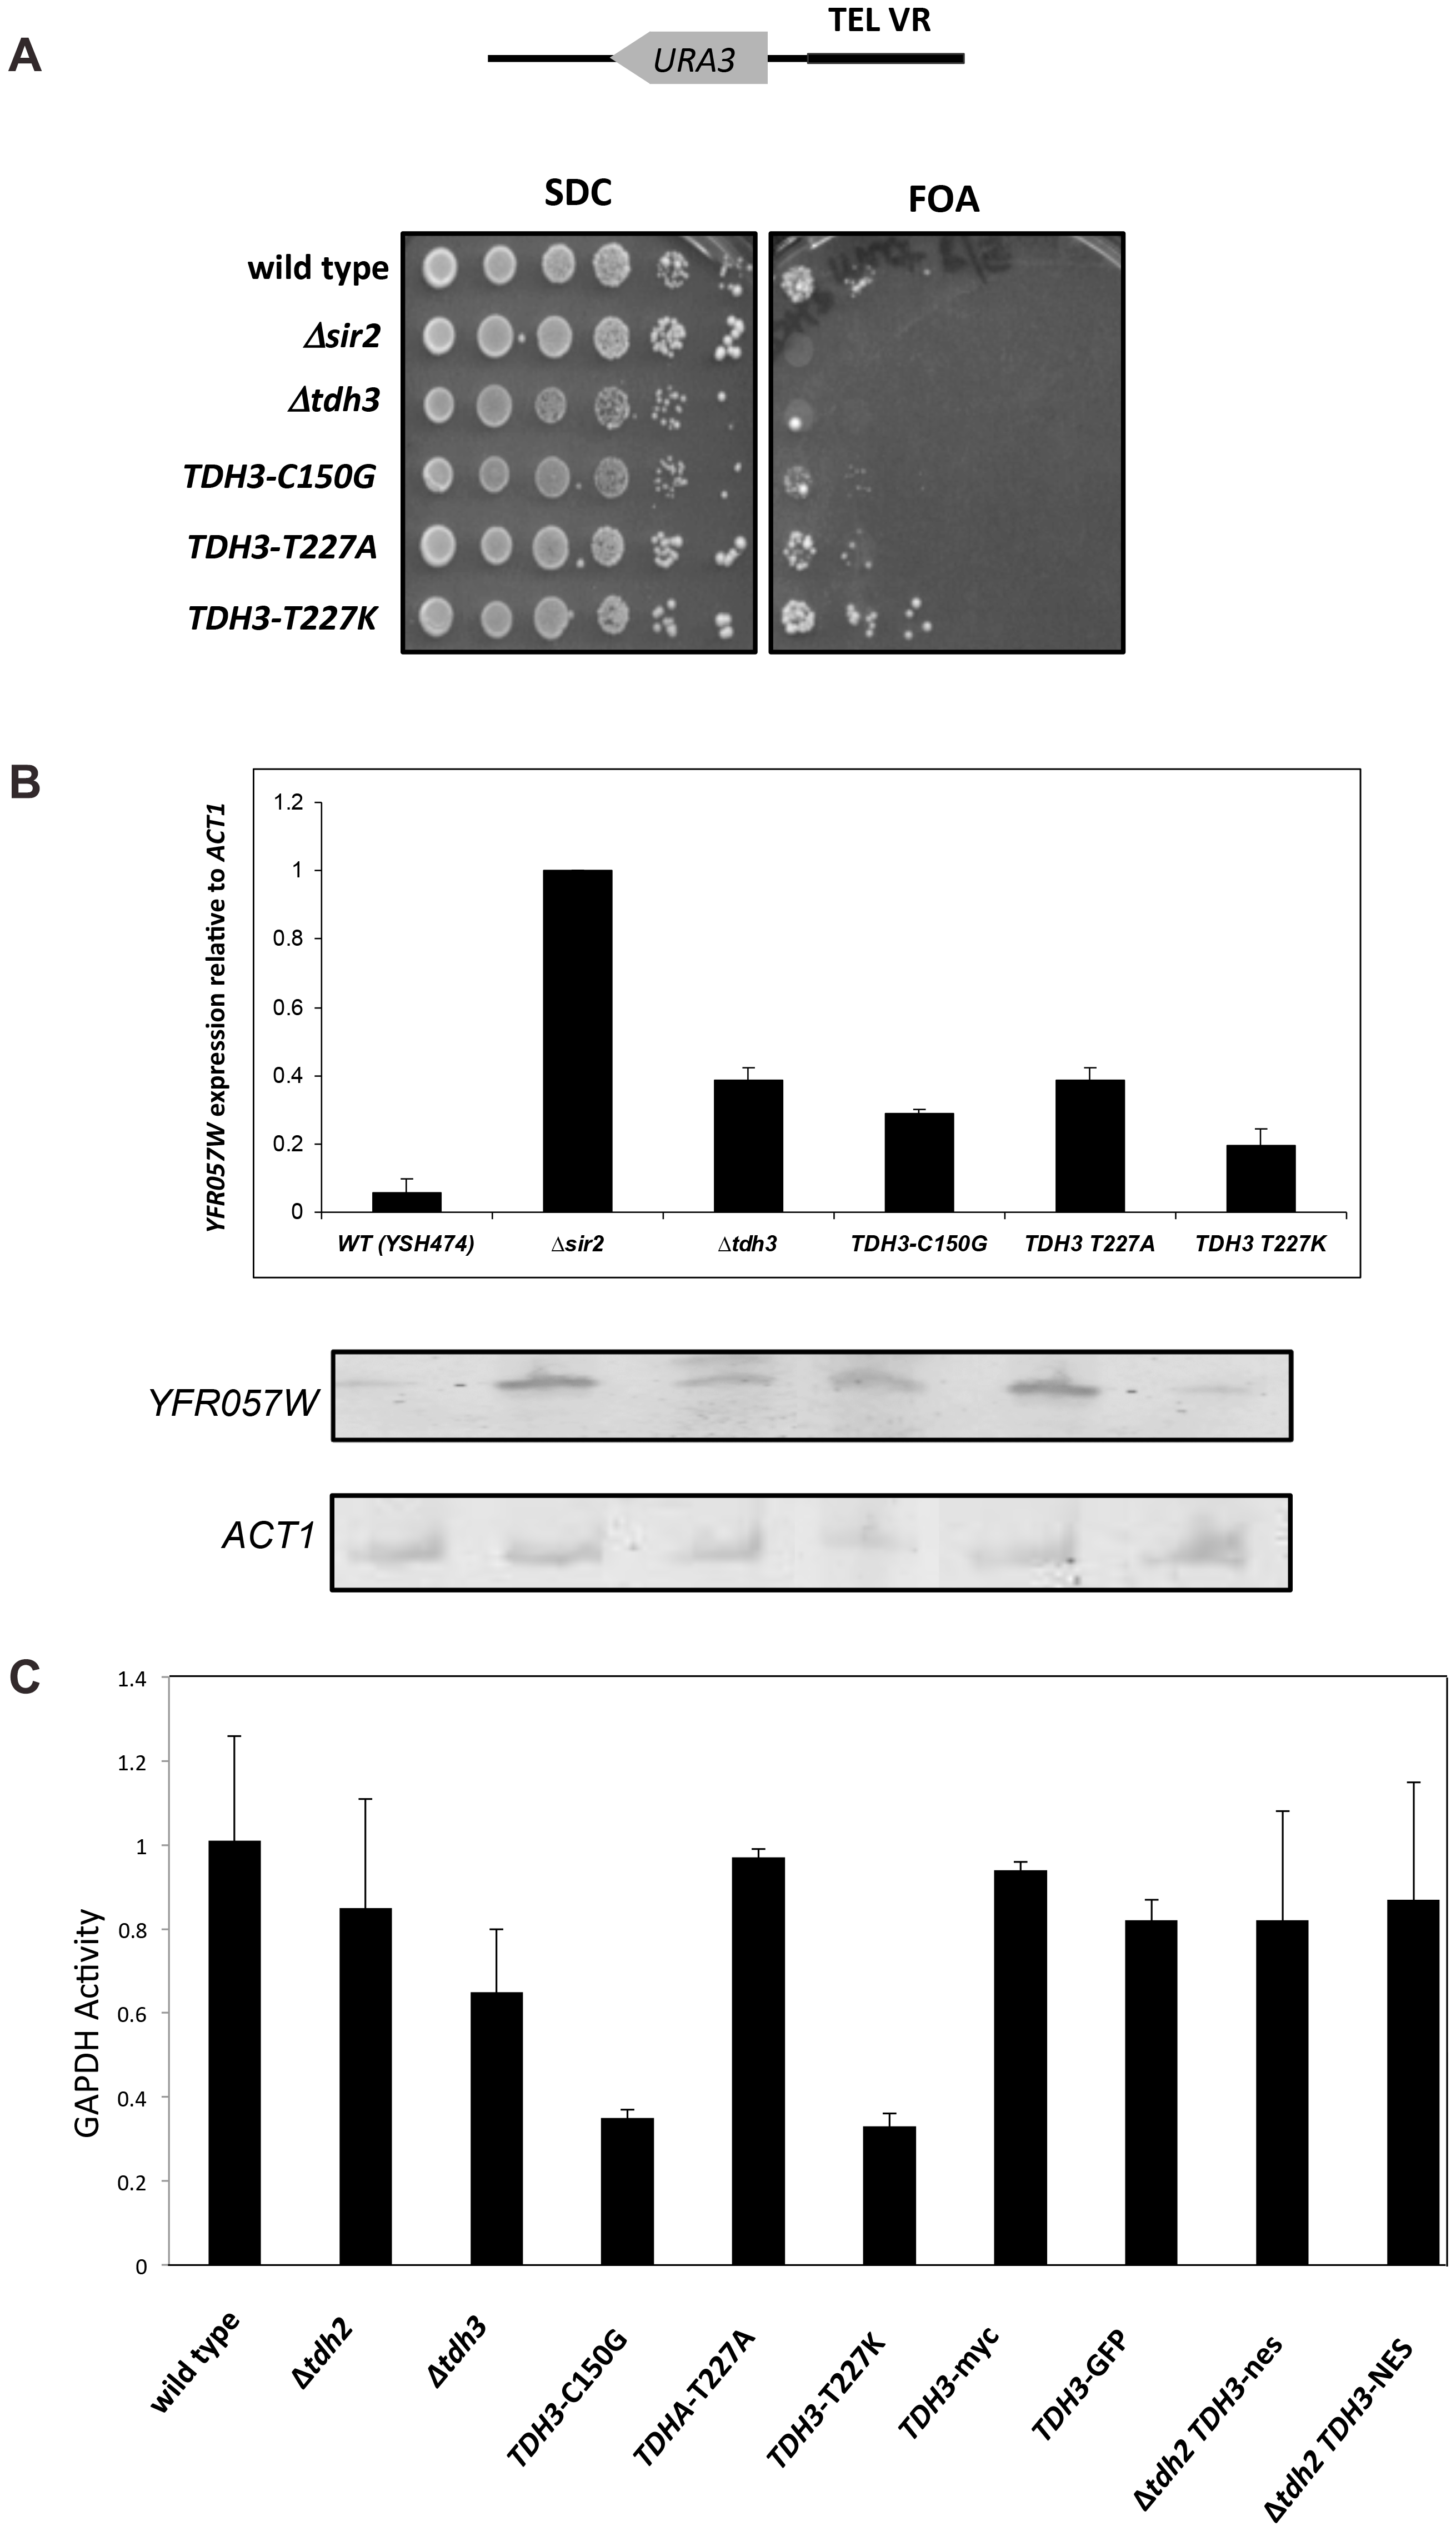 Separation of silencing and GAPDH activity in <i>TDH3</i> alleles.